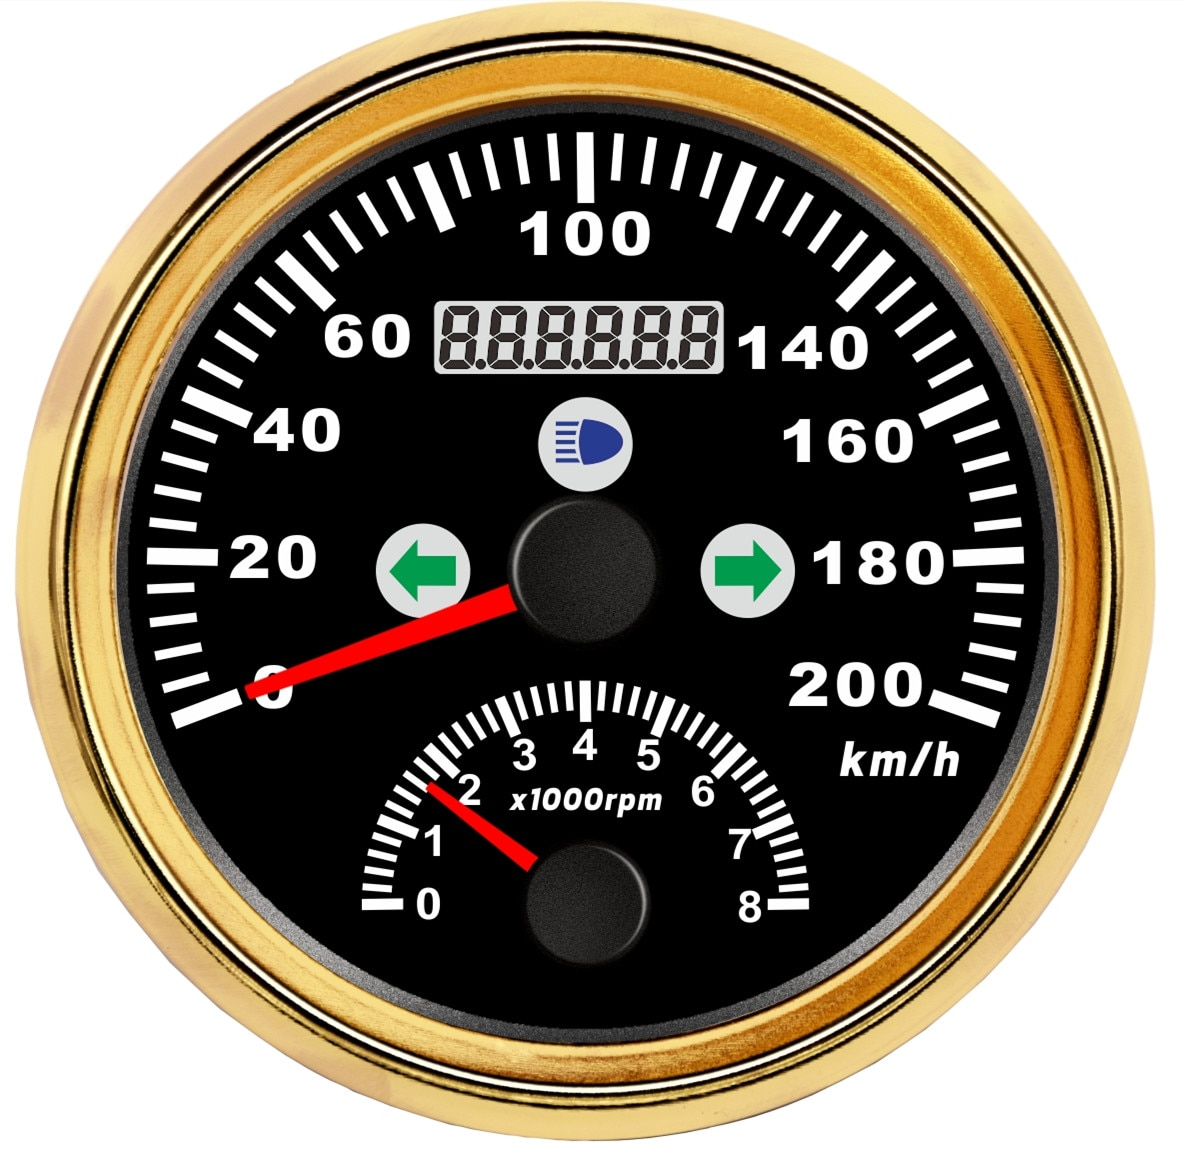 Boat Marine GPS Speedometer 200KMH With Turning Light High Beam Tachometer 8000 RPM Red Led enlarge